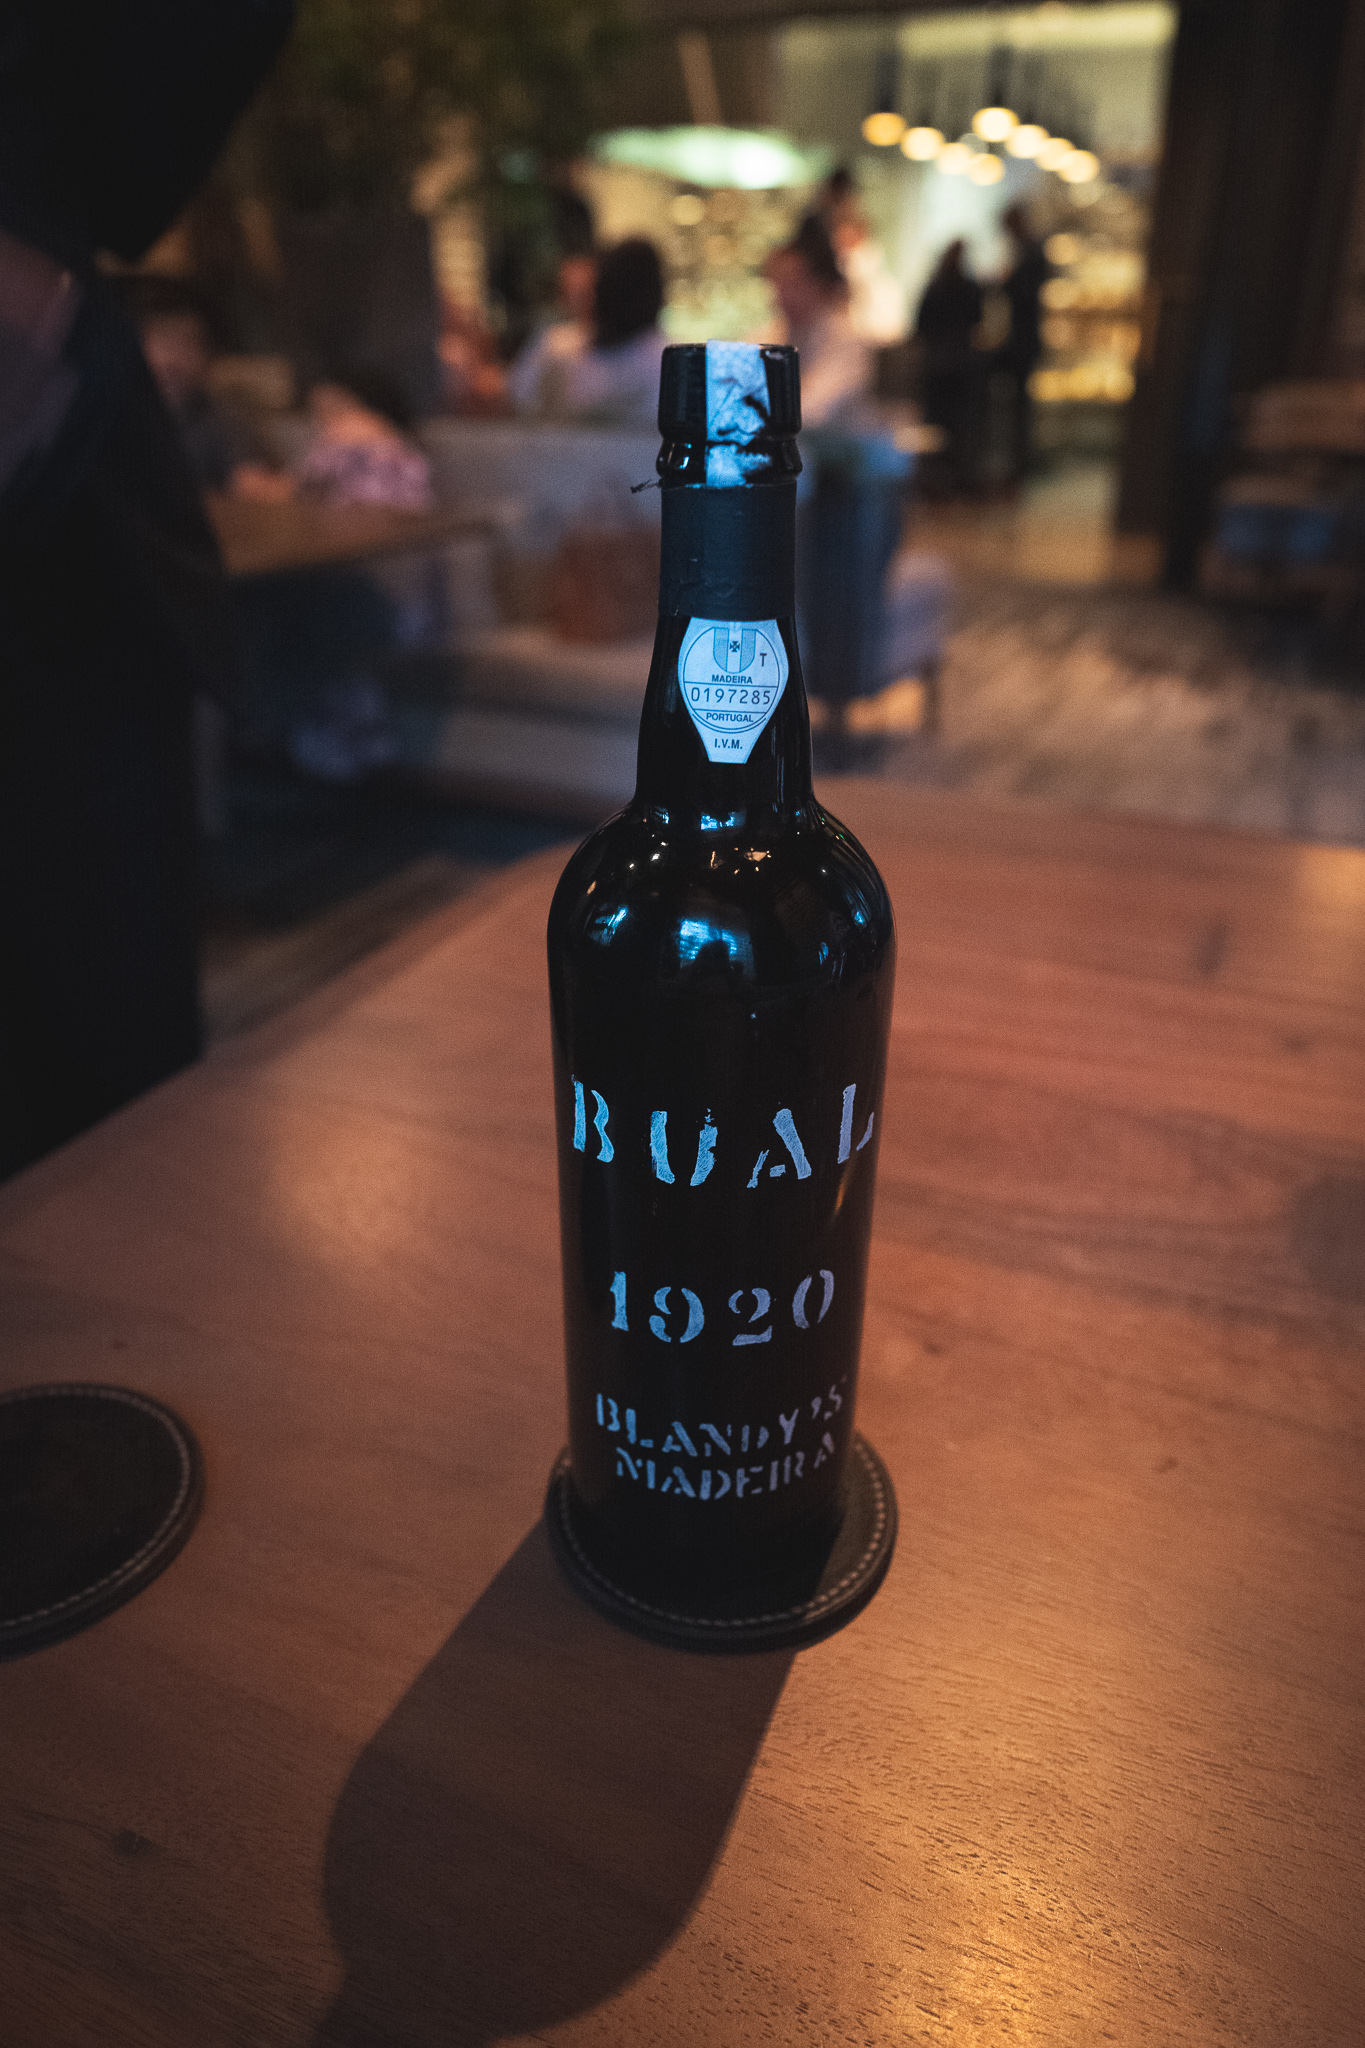 Blandy's Madeira from 1920